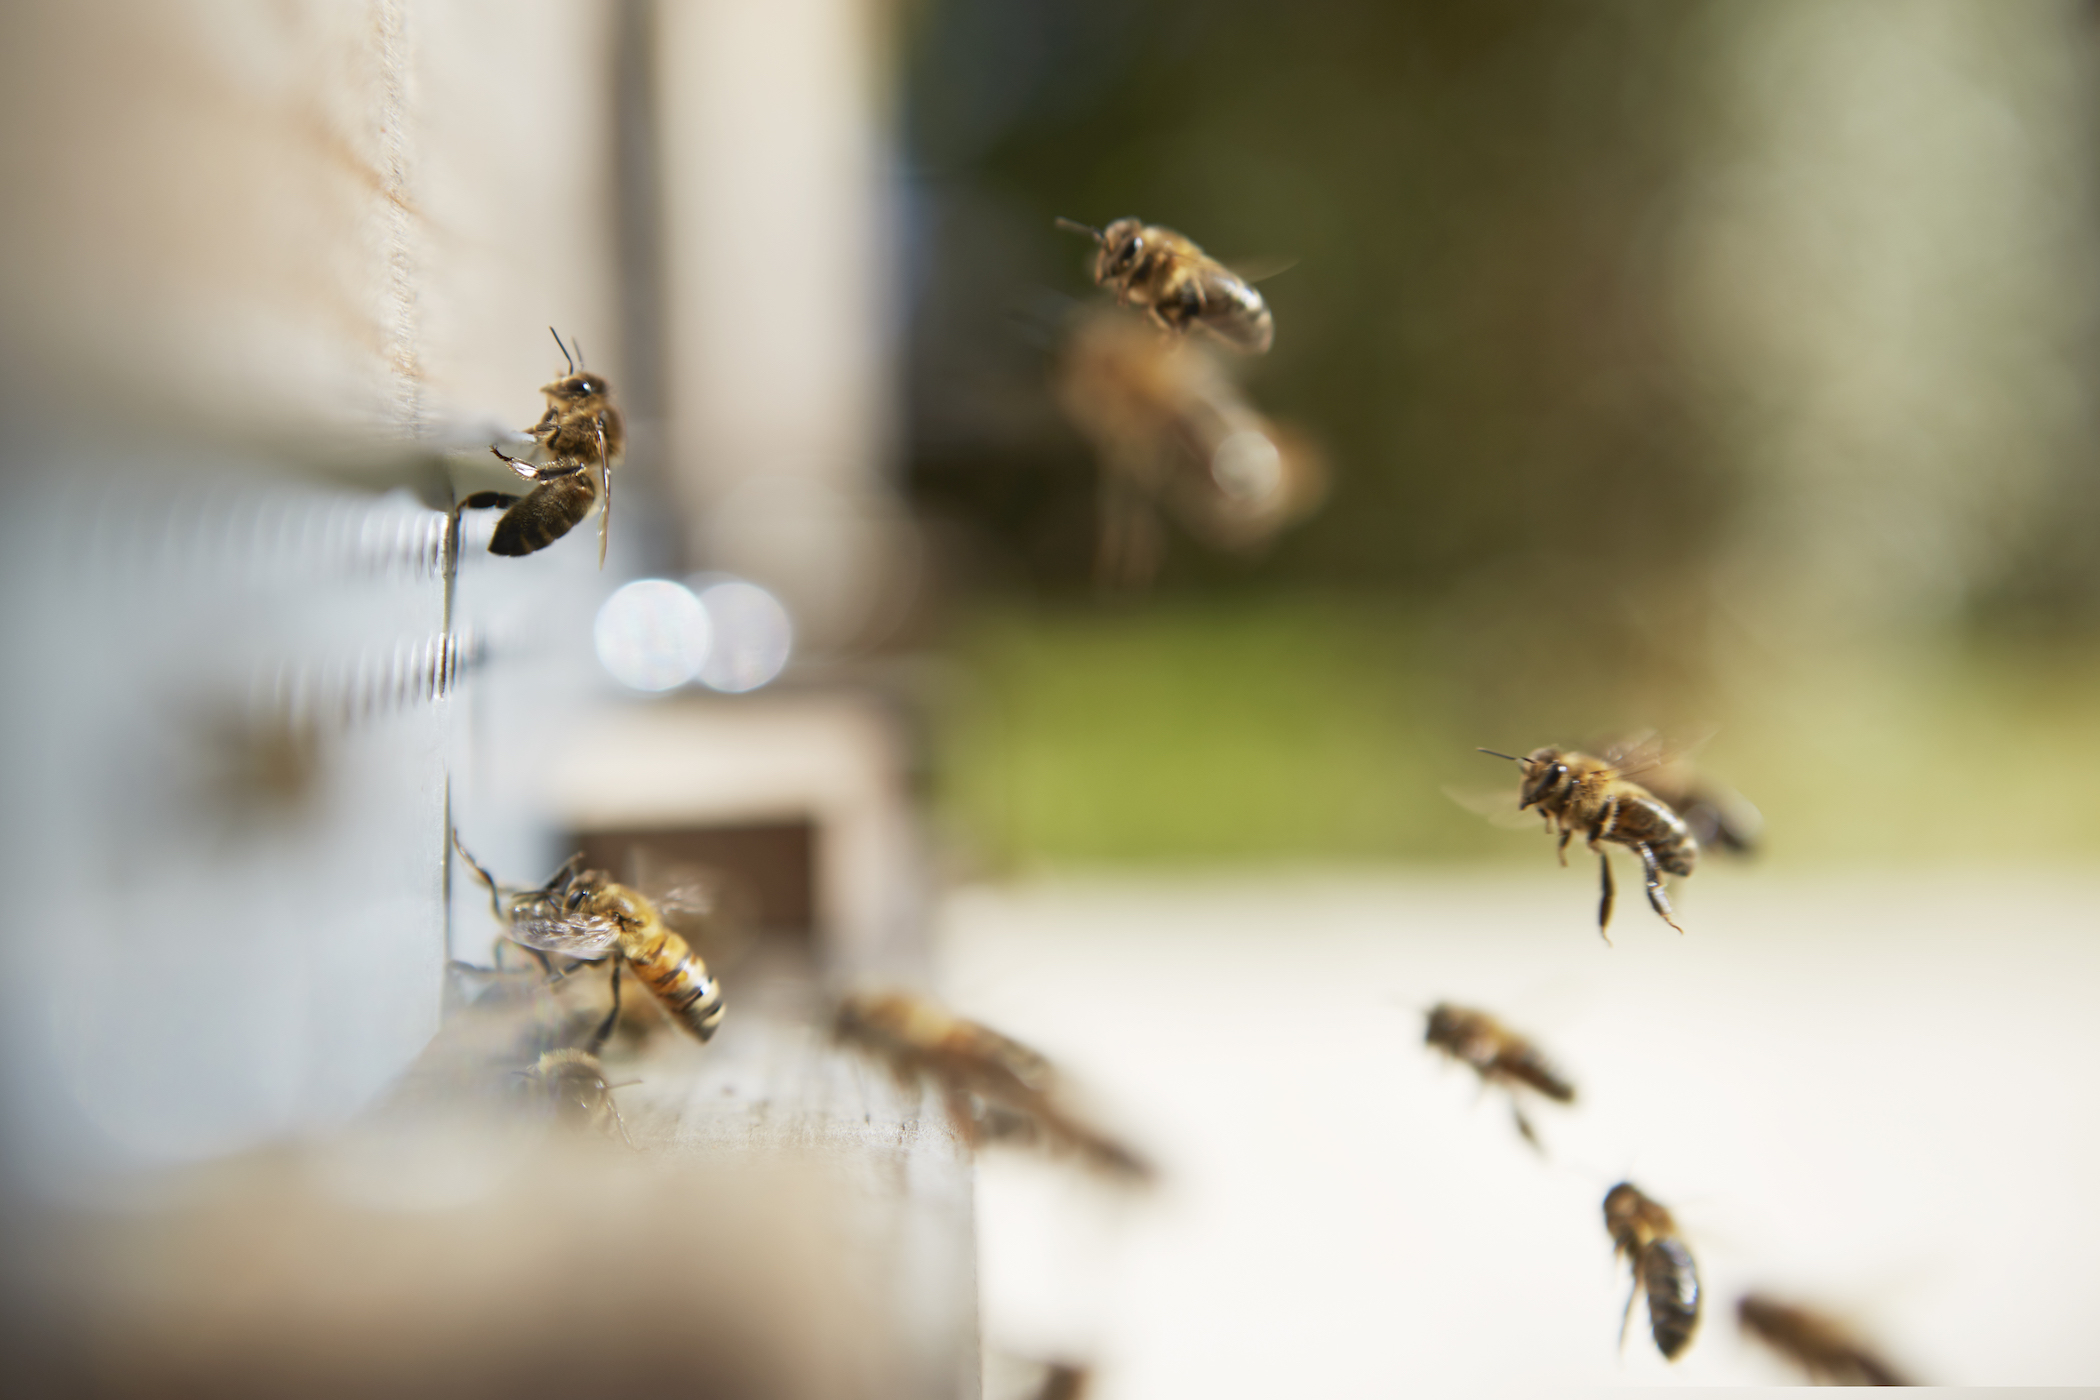 Bees ensure a healthy ecosystem photo@ladauphine